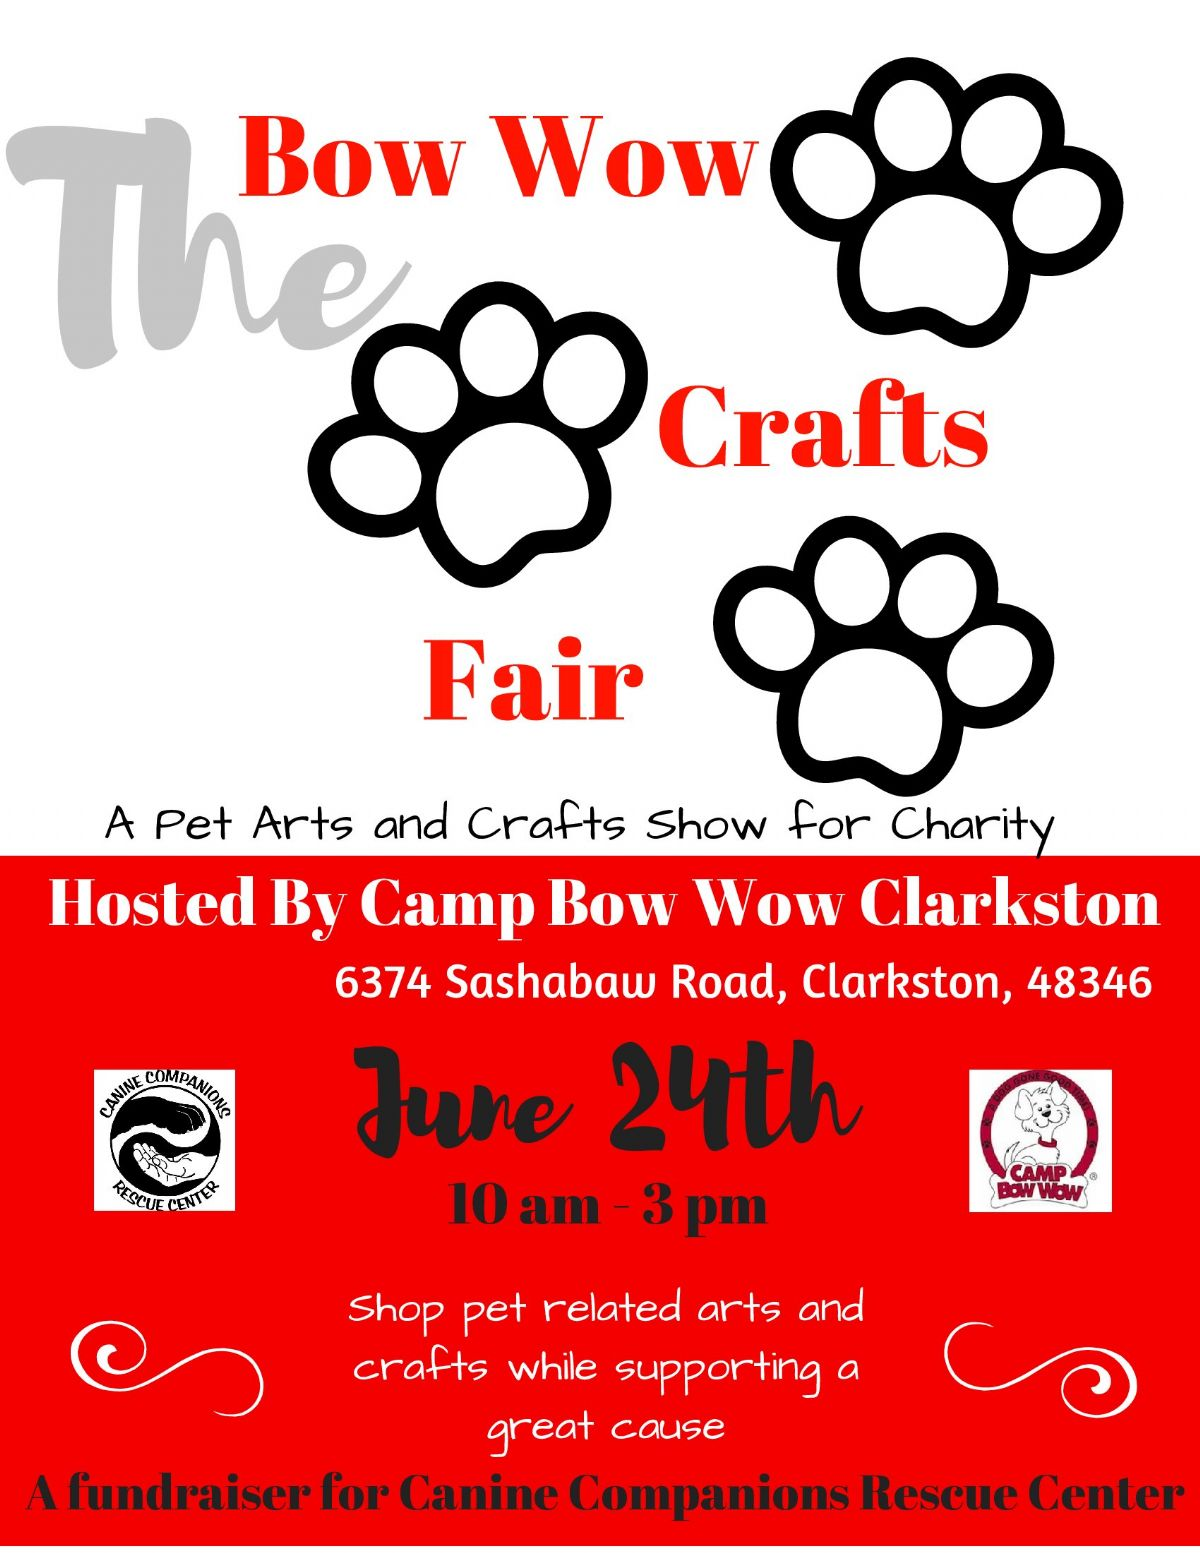 The Bow Wow Crafts Fair